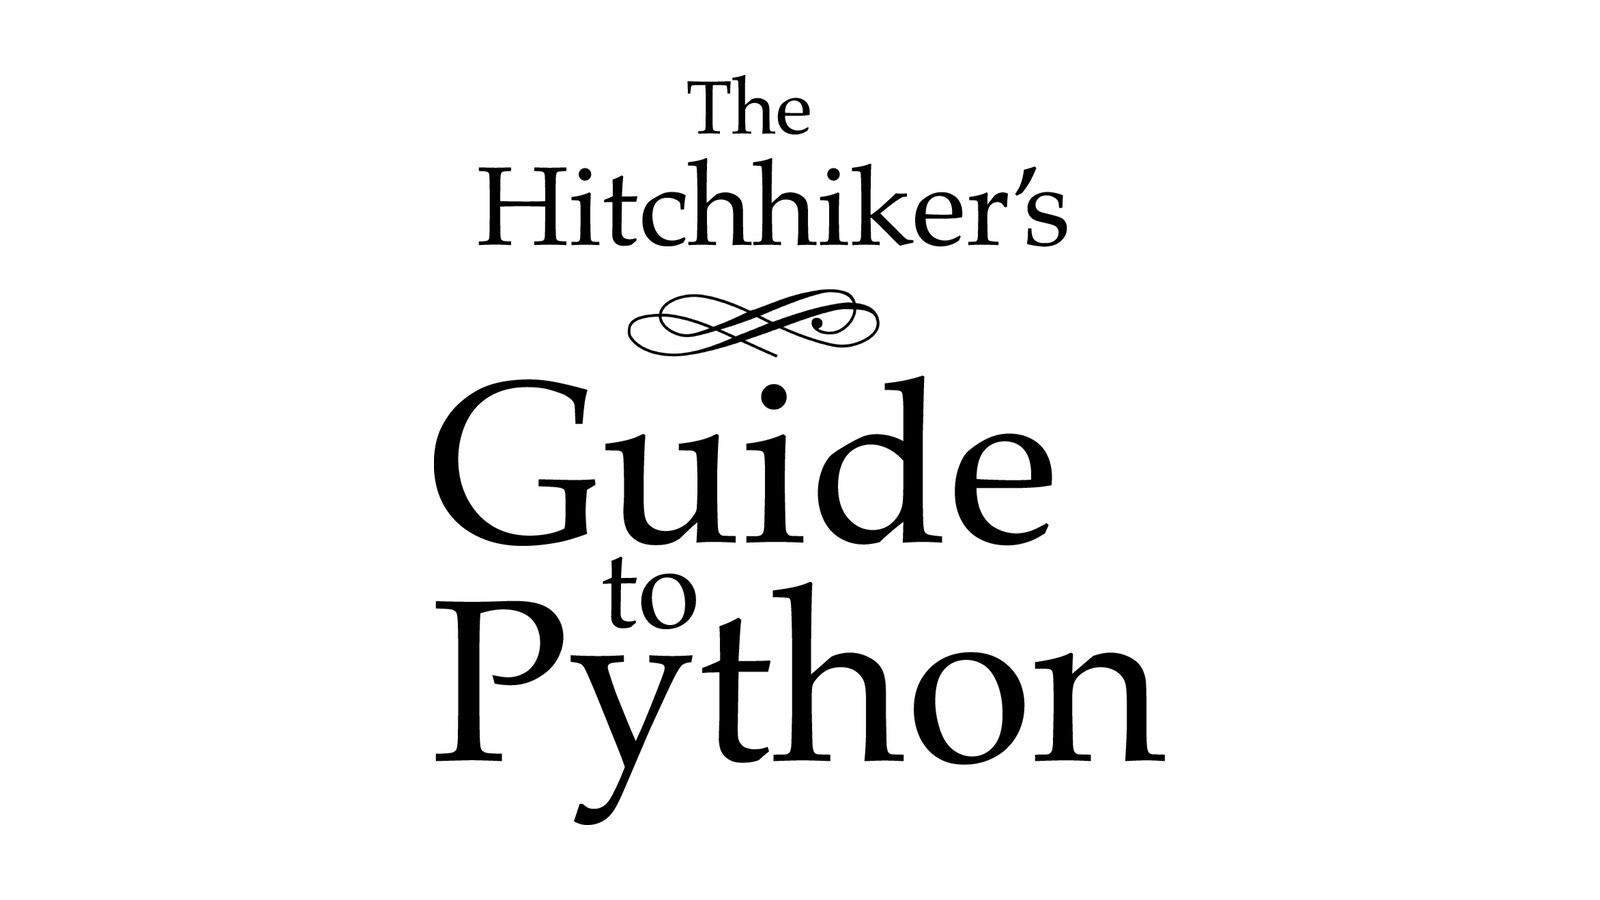 Image Manipulation — The Hitchhiker's Guide to Python